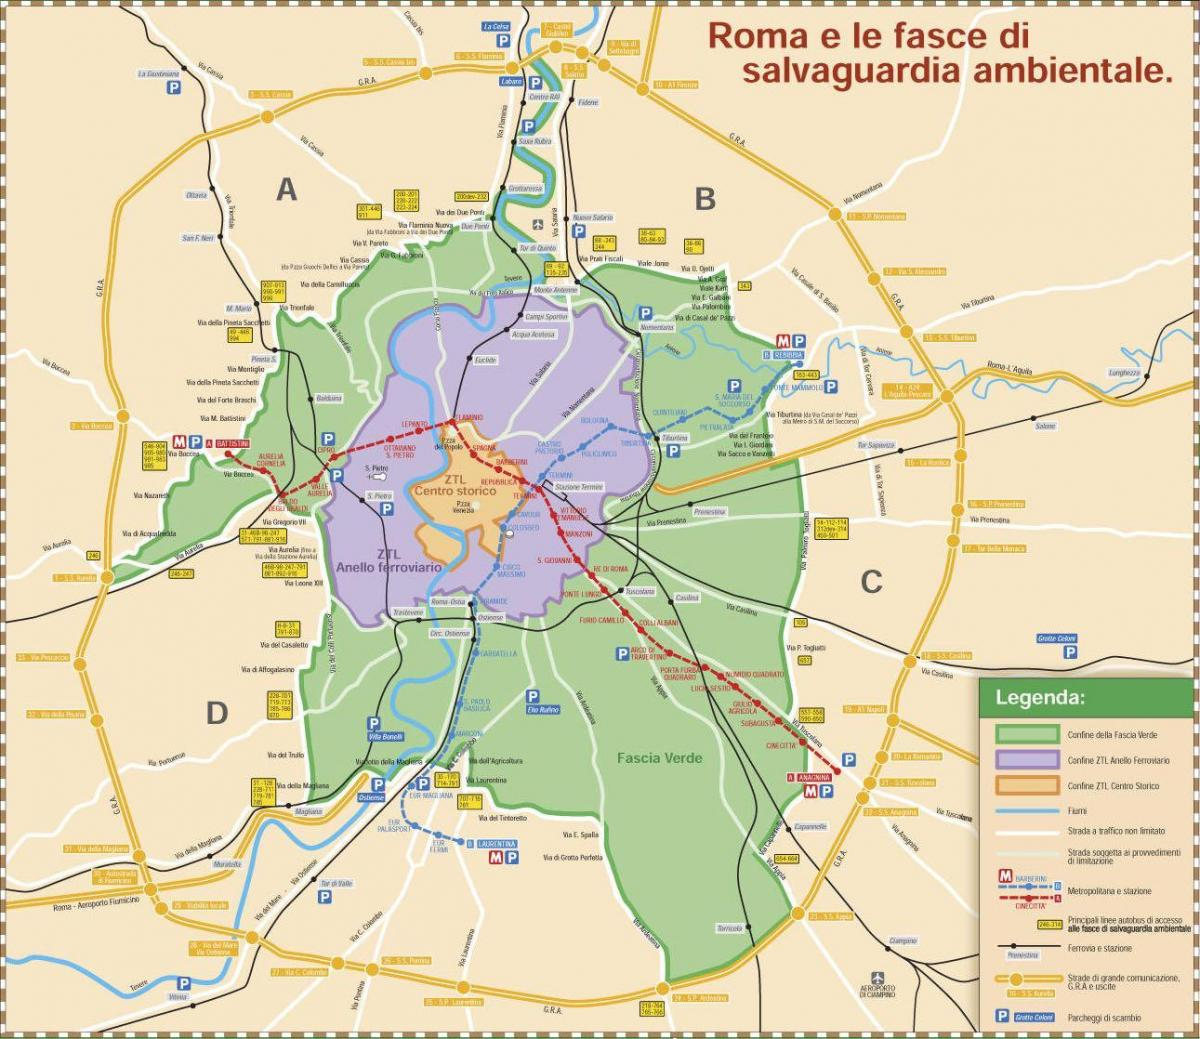 Map of Roma ztl